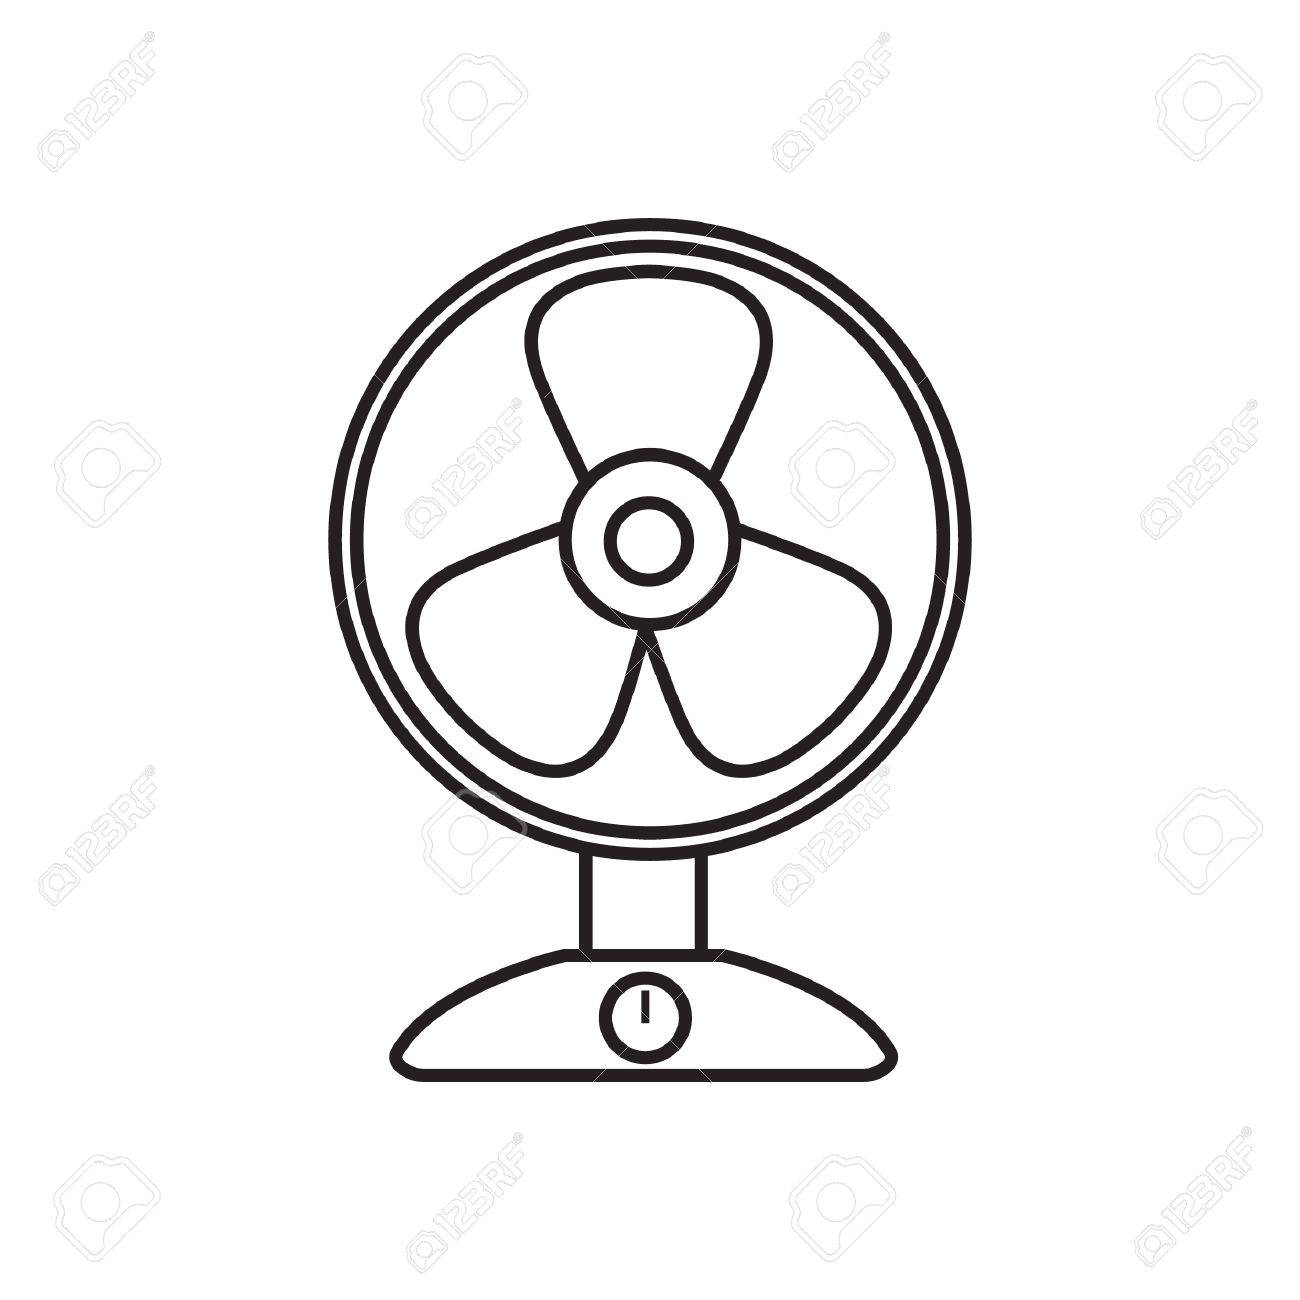 Table Fan Royalty Free Cliparts, Vectors, And Stock Illustration ... for Fan Clipart Black And White  165jwn